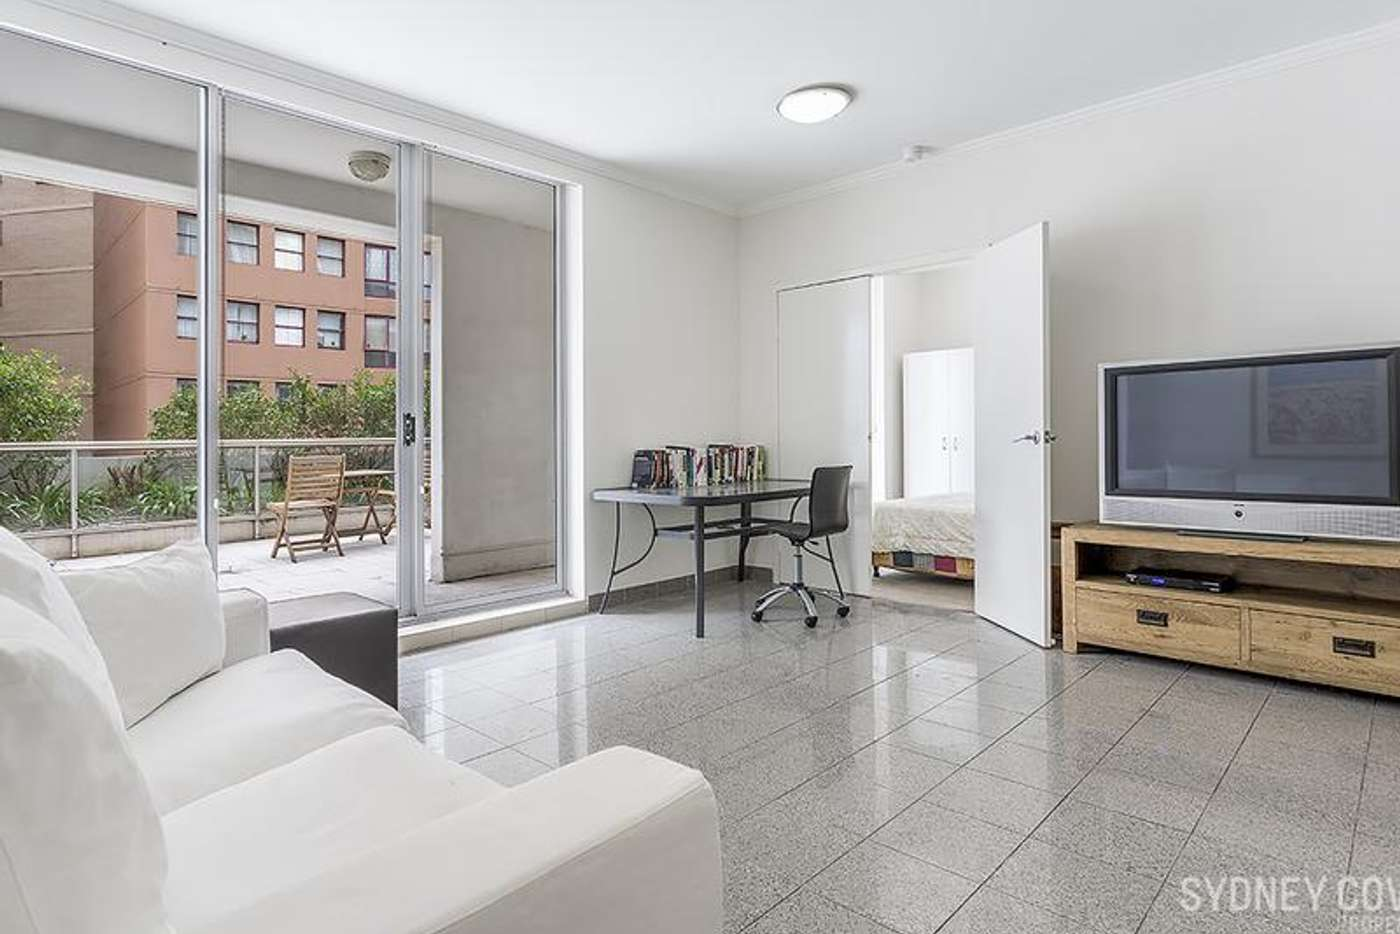 Main view of Homely apartment listing, 298 Sussex Street, Sydney NSW 2000